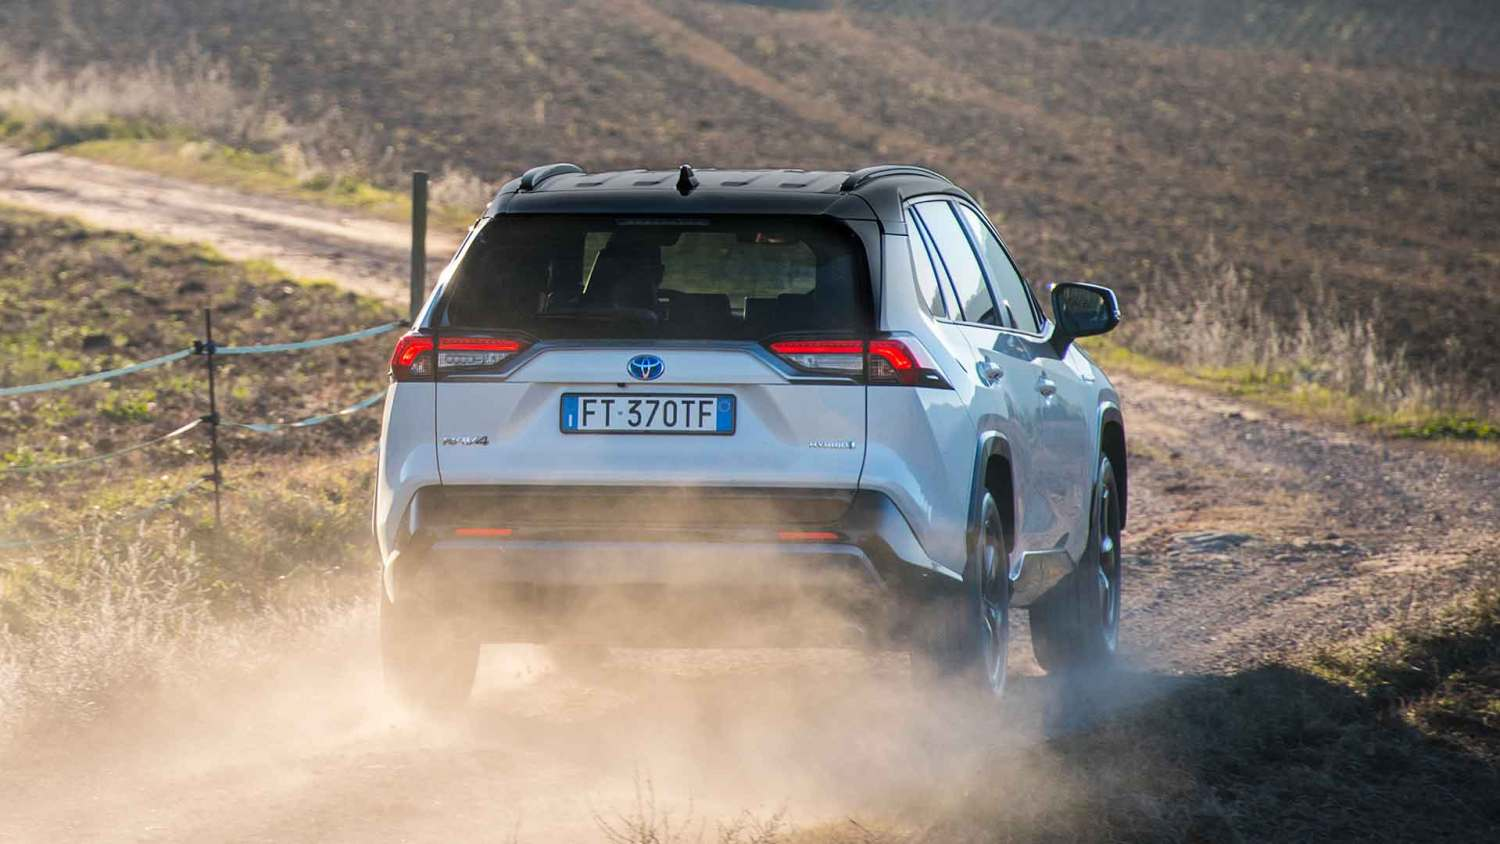 2019 Toyota RAV4: Rugged Styling, Well Equipped, More Off-road Capabilty >> 2019 Toyota Rav4 Review A Return To Its Rugged Suv Roots